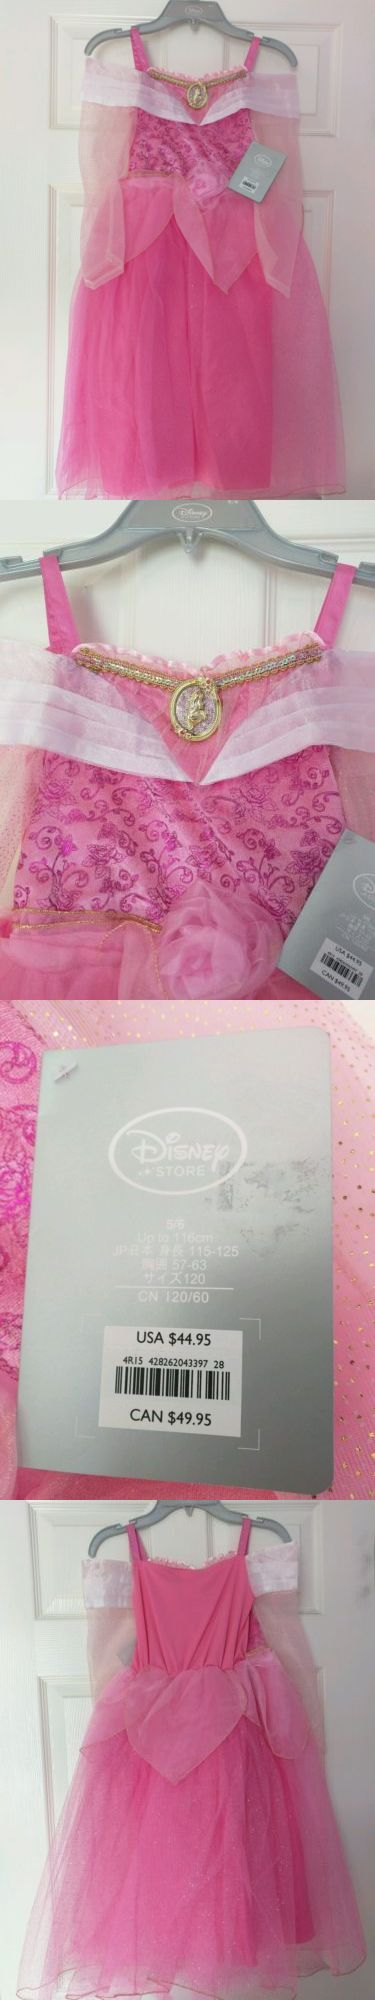 Kids Costumes: Nwt Disney Store Princess Aurora Costume Dress Size 5/6 Pink Retail $44.95 BUY IT NOW ONLY: $35.0